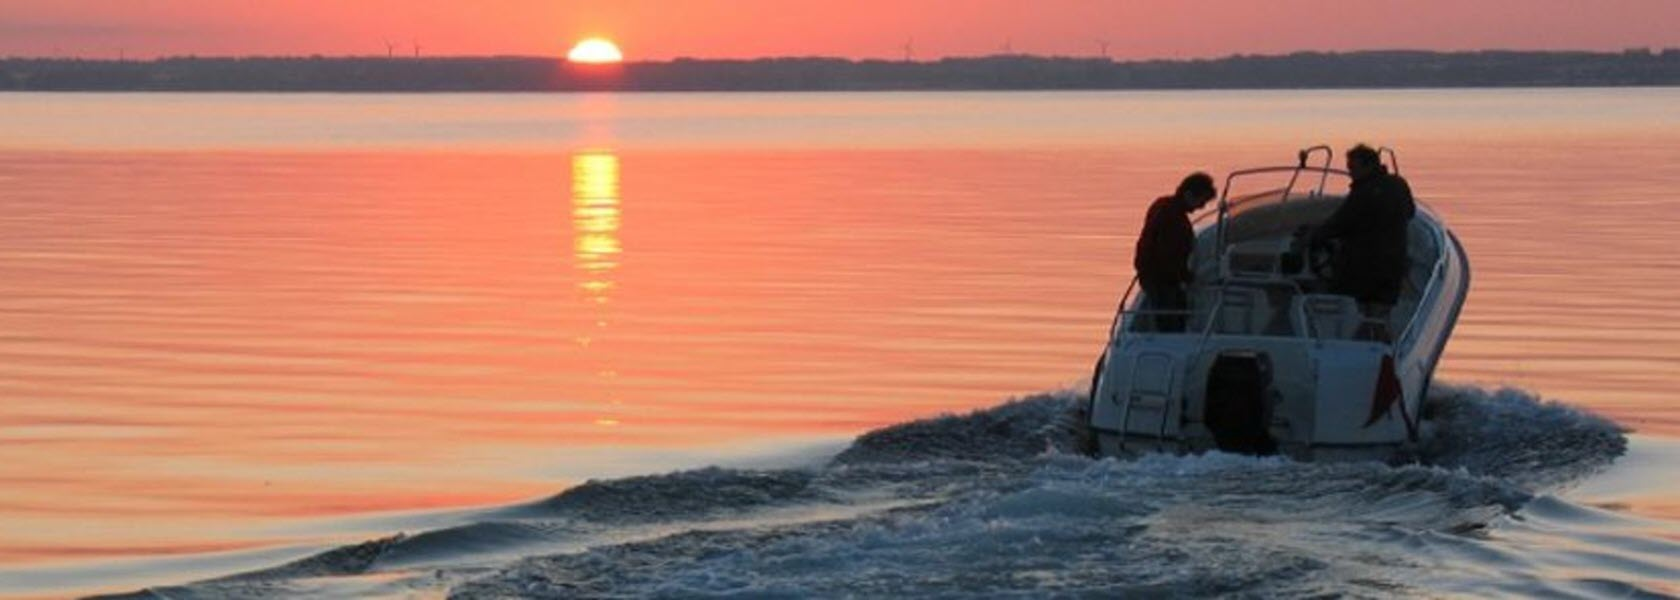 Boat Insurance   Get a Boat Insurance Quote   The Hartford